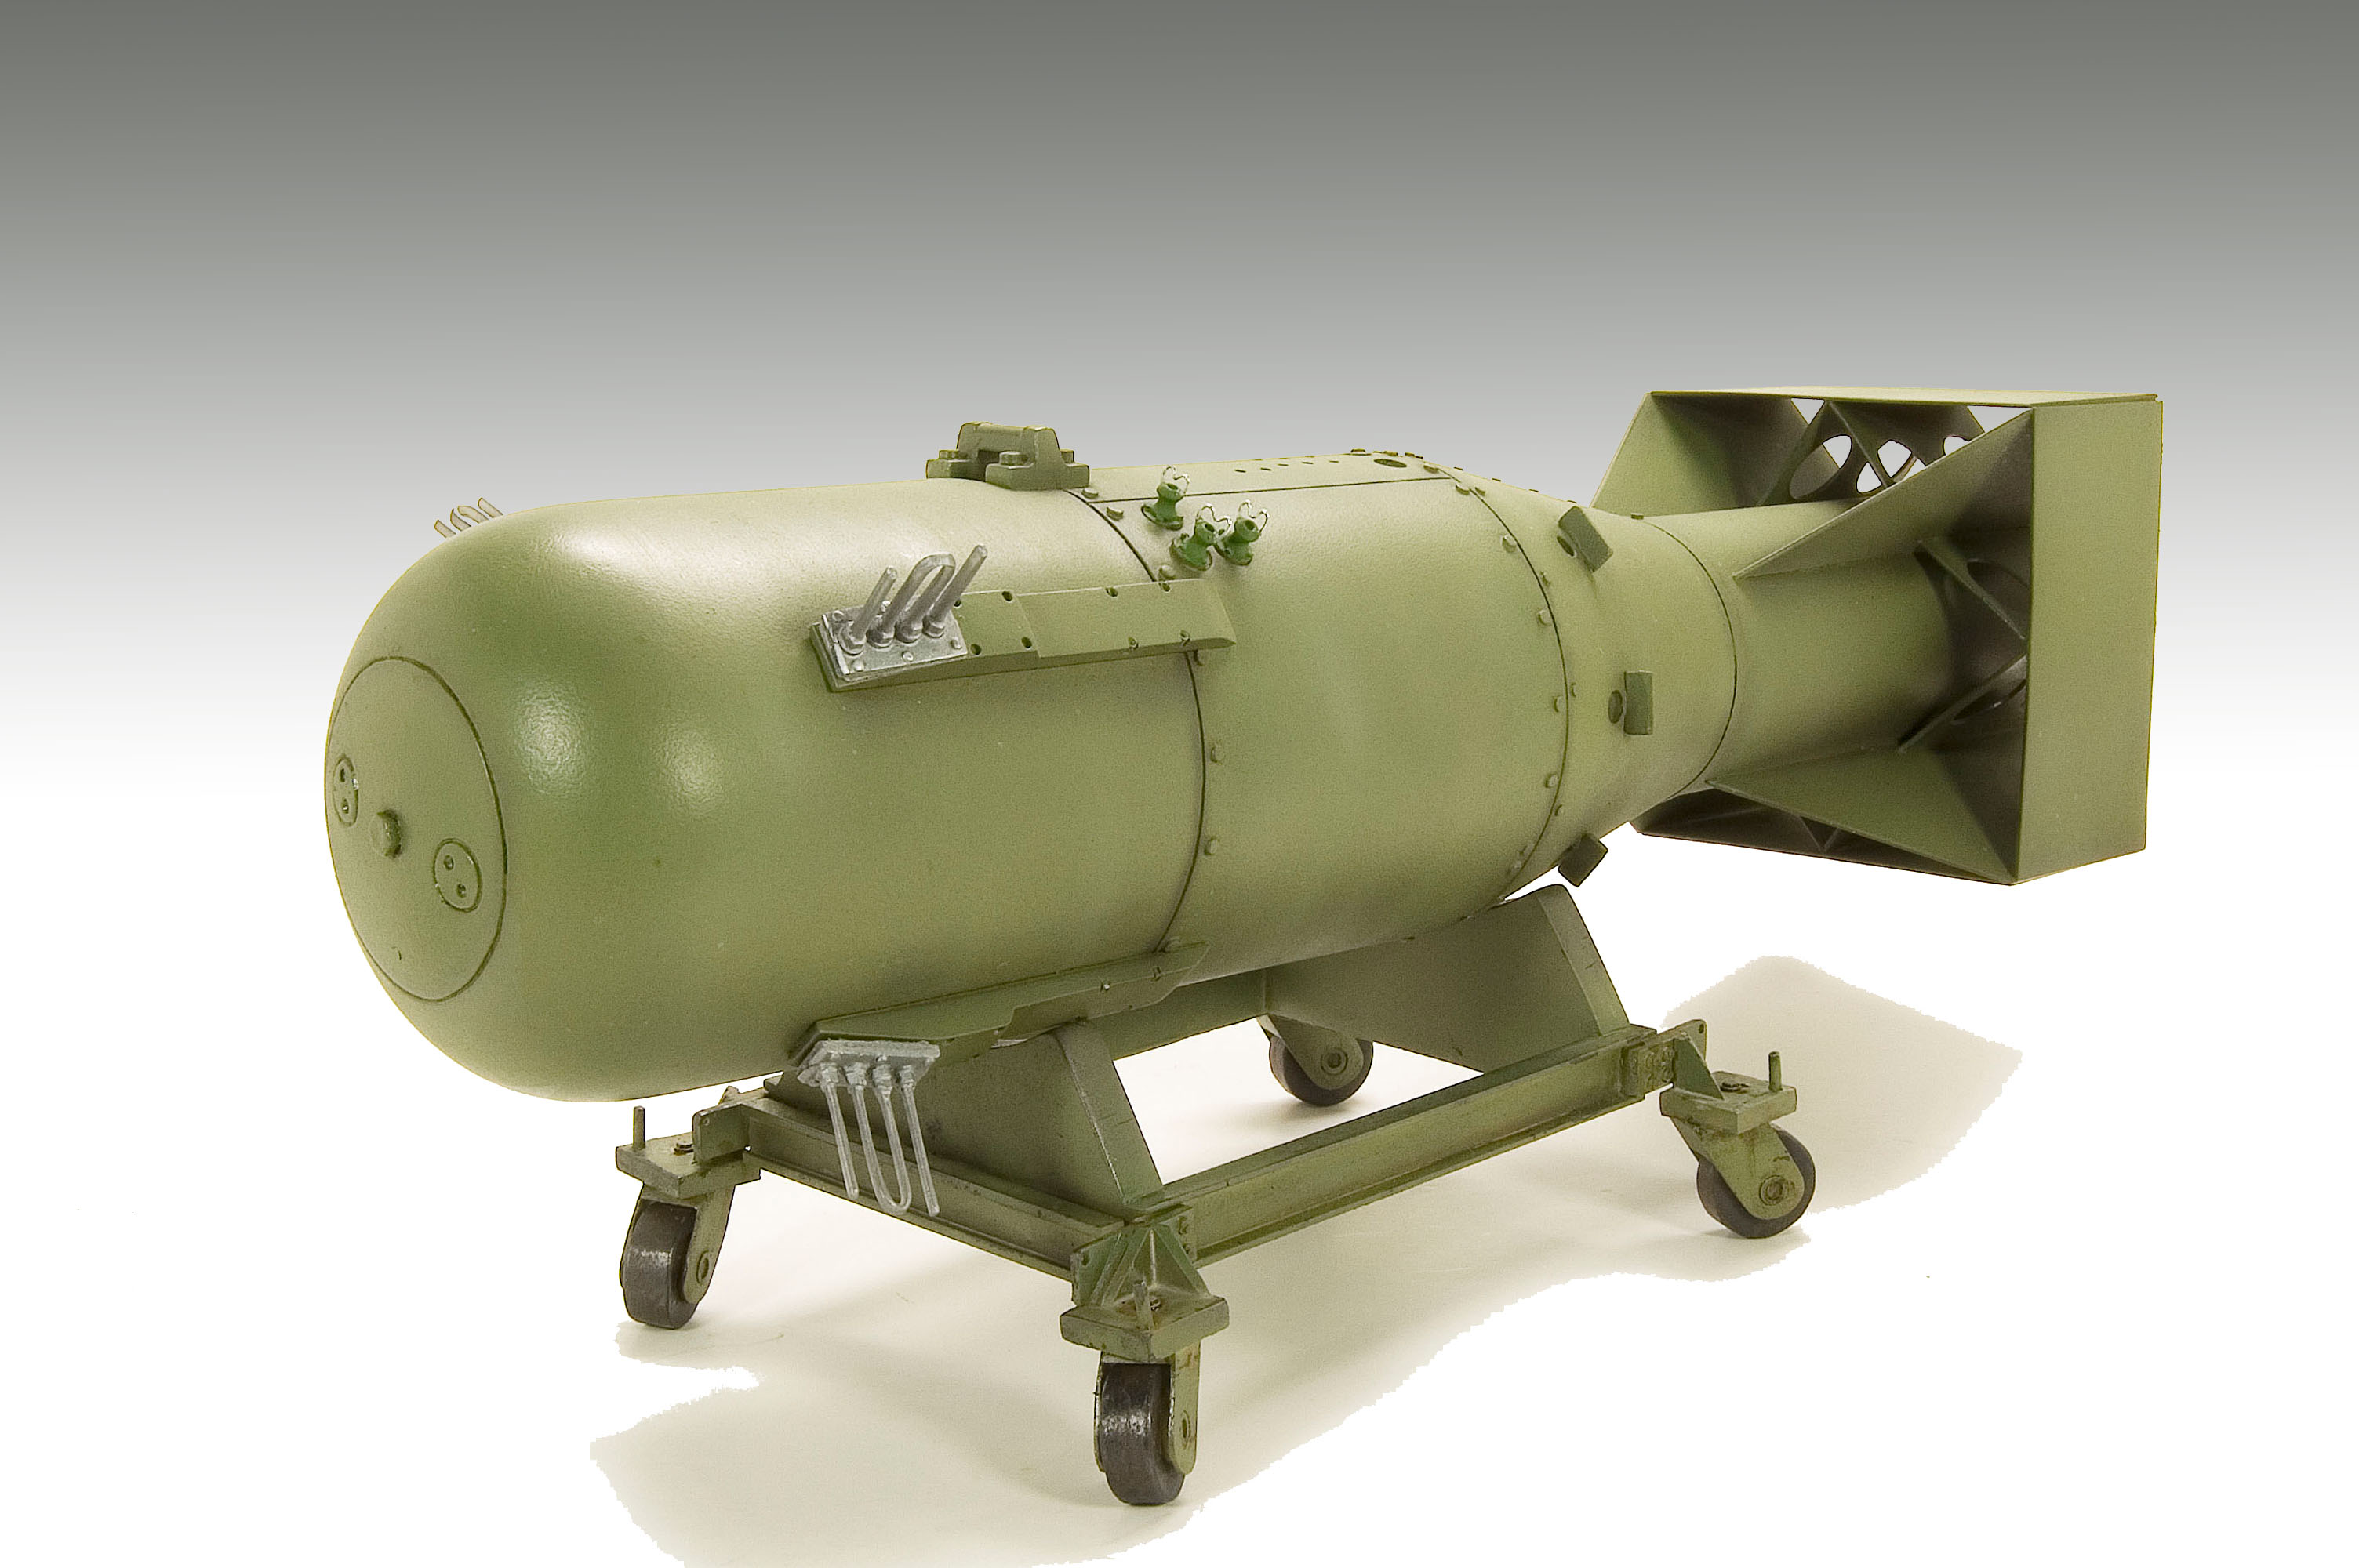 Little Boy Atomic Bomb 1/12 Scale Model Kit | Military Model Kits ...